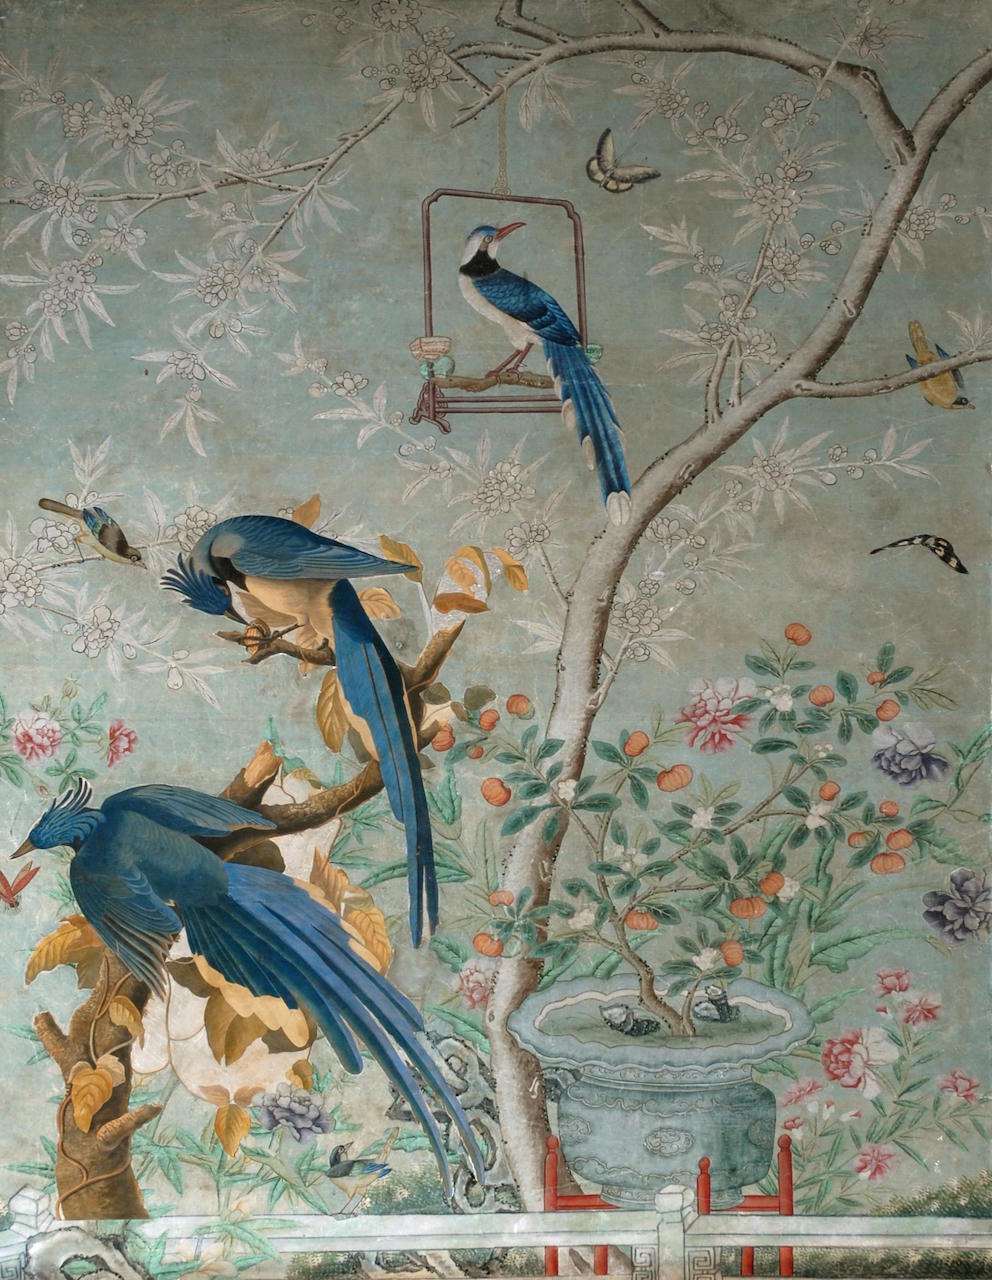 The 19thCentury Lady Who Used Audubons Birds for Wallpaper